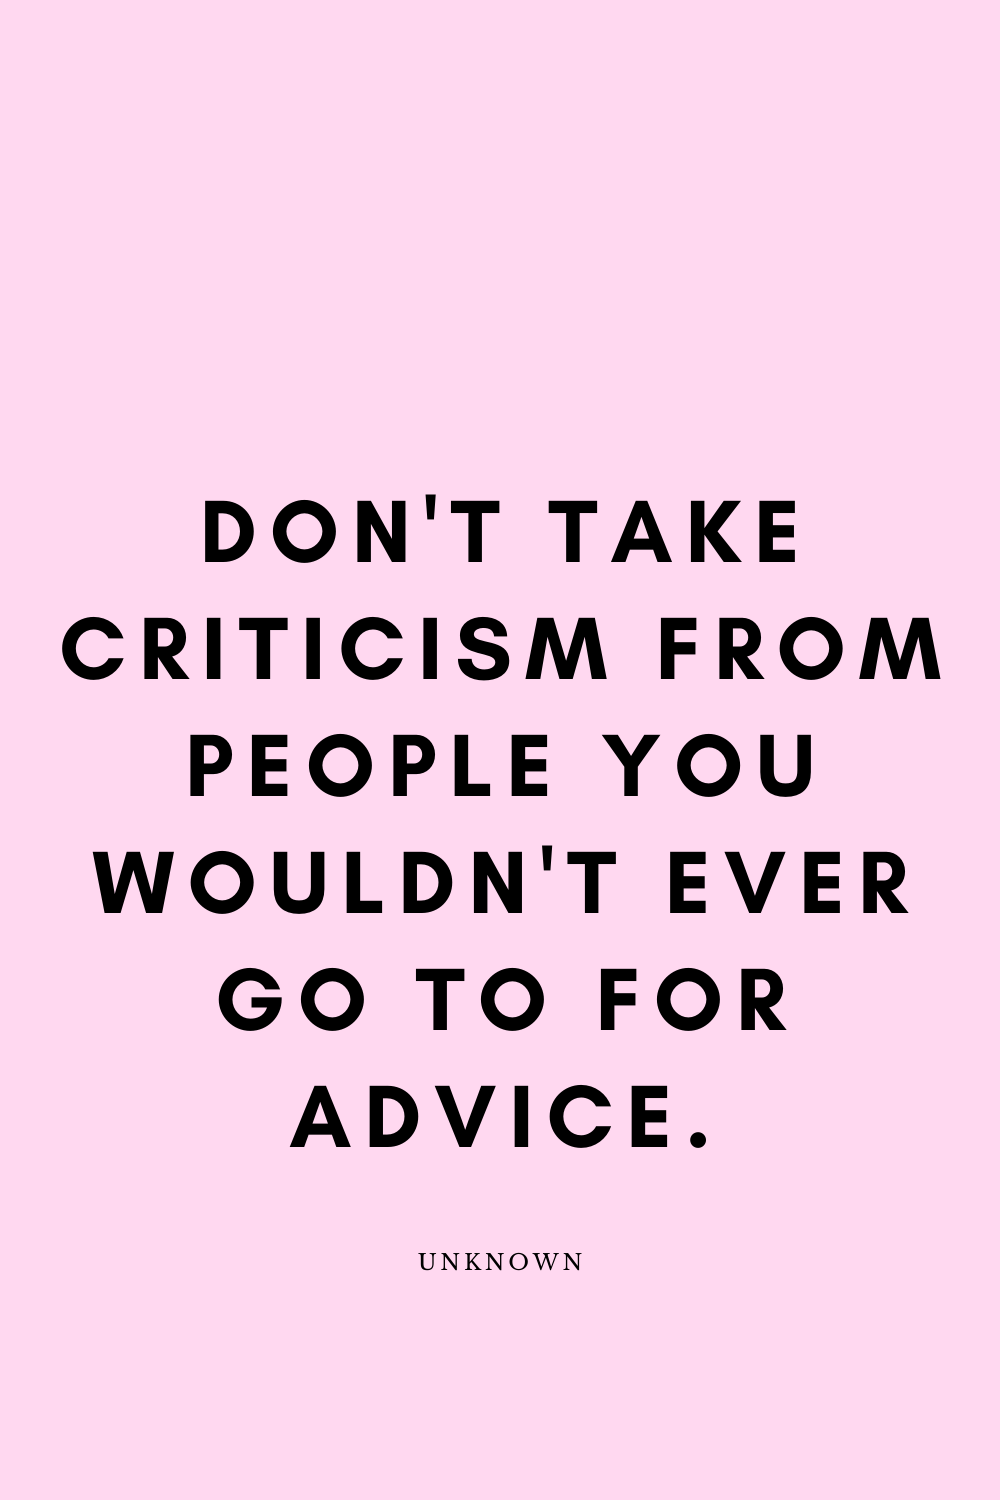 Don't take criticism from people you wouldn't ever go to for advice. #happynewyear2020quotes